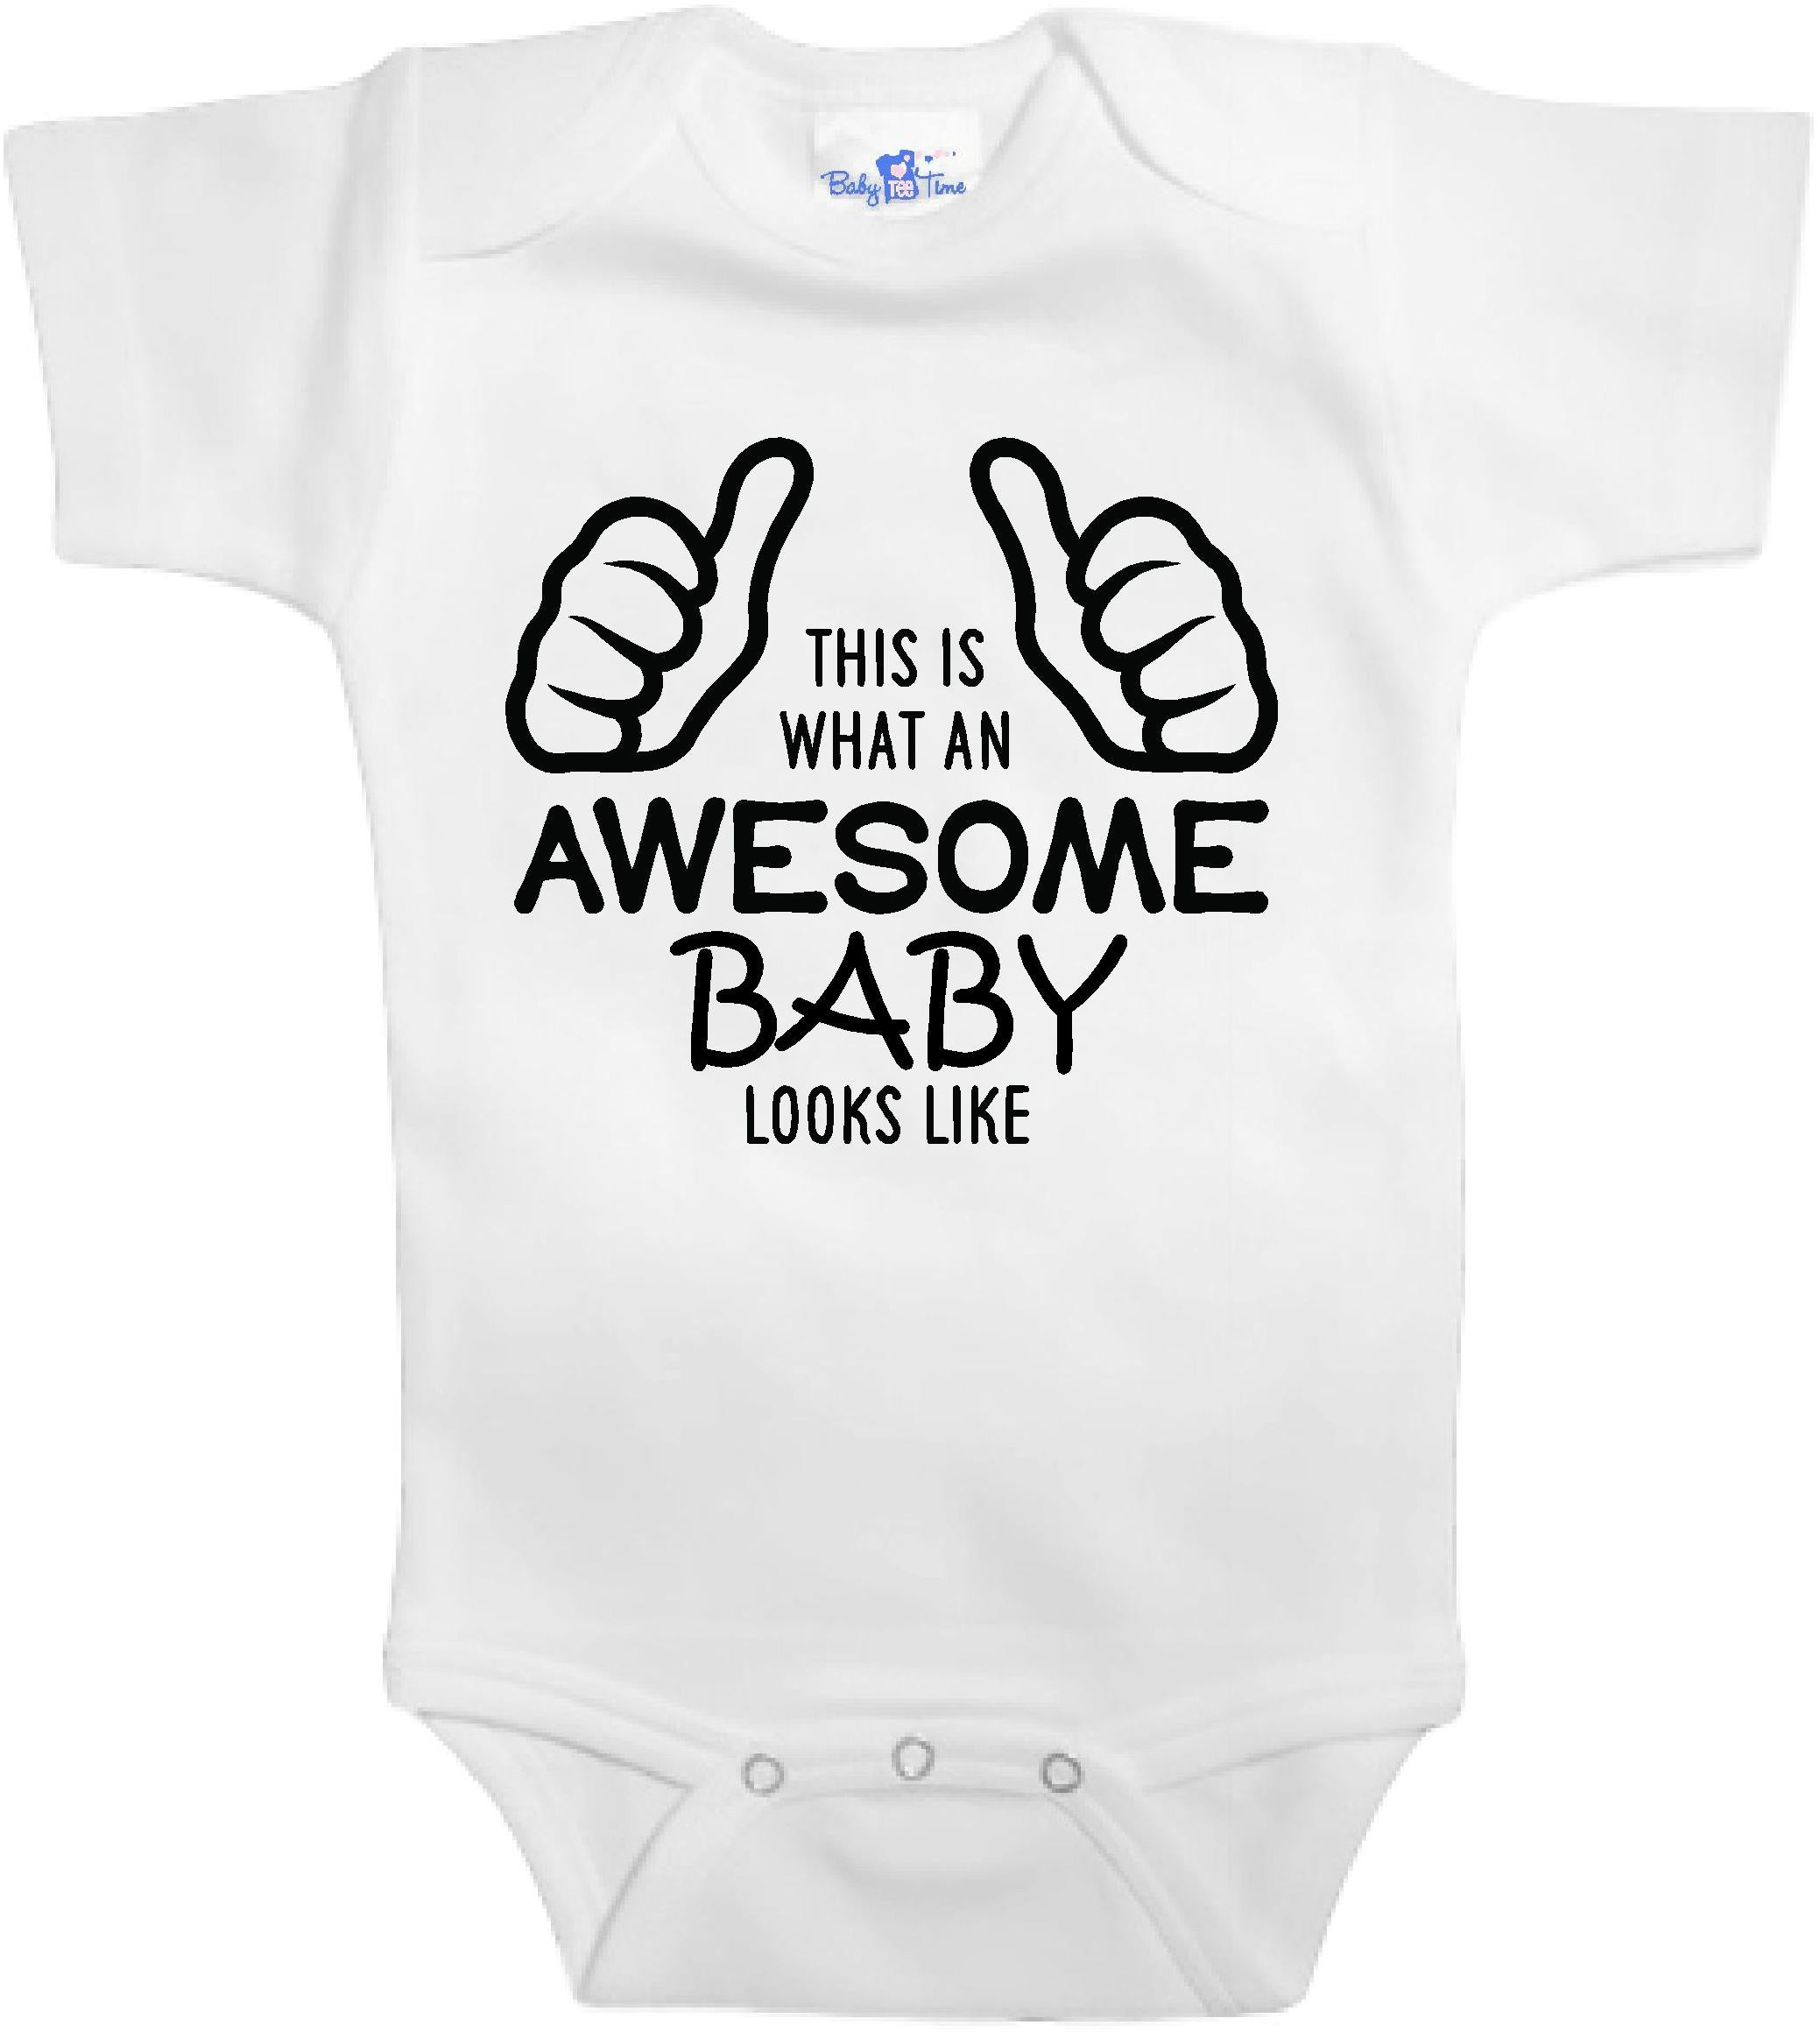 Adorable Baby Tee Time This is what an awesome baby looks like popular